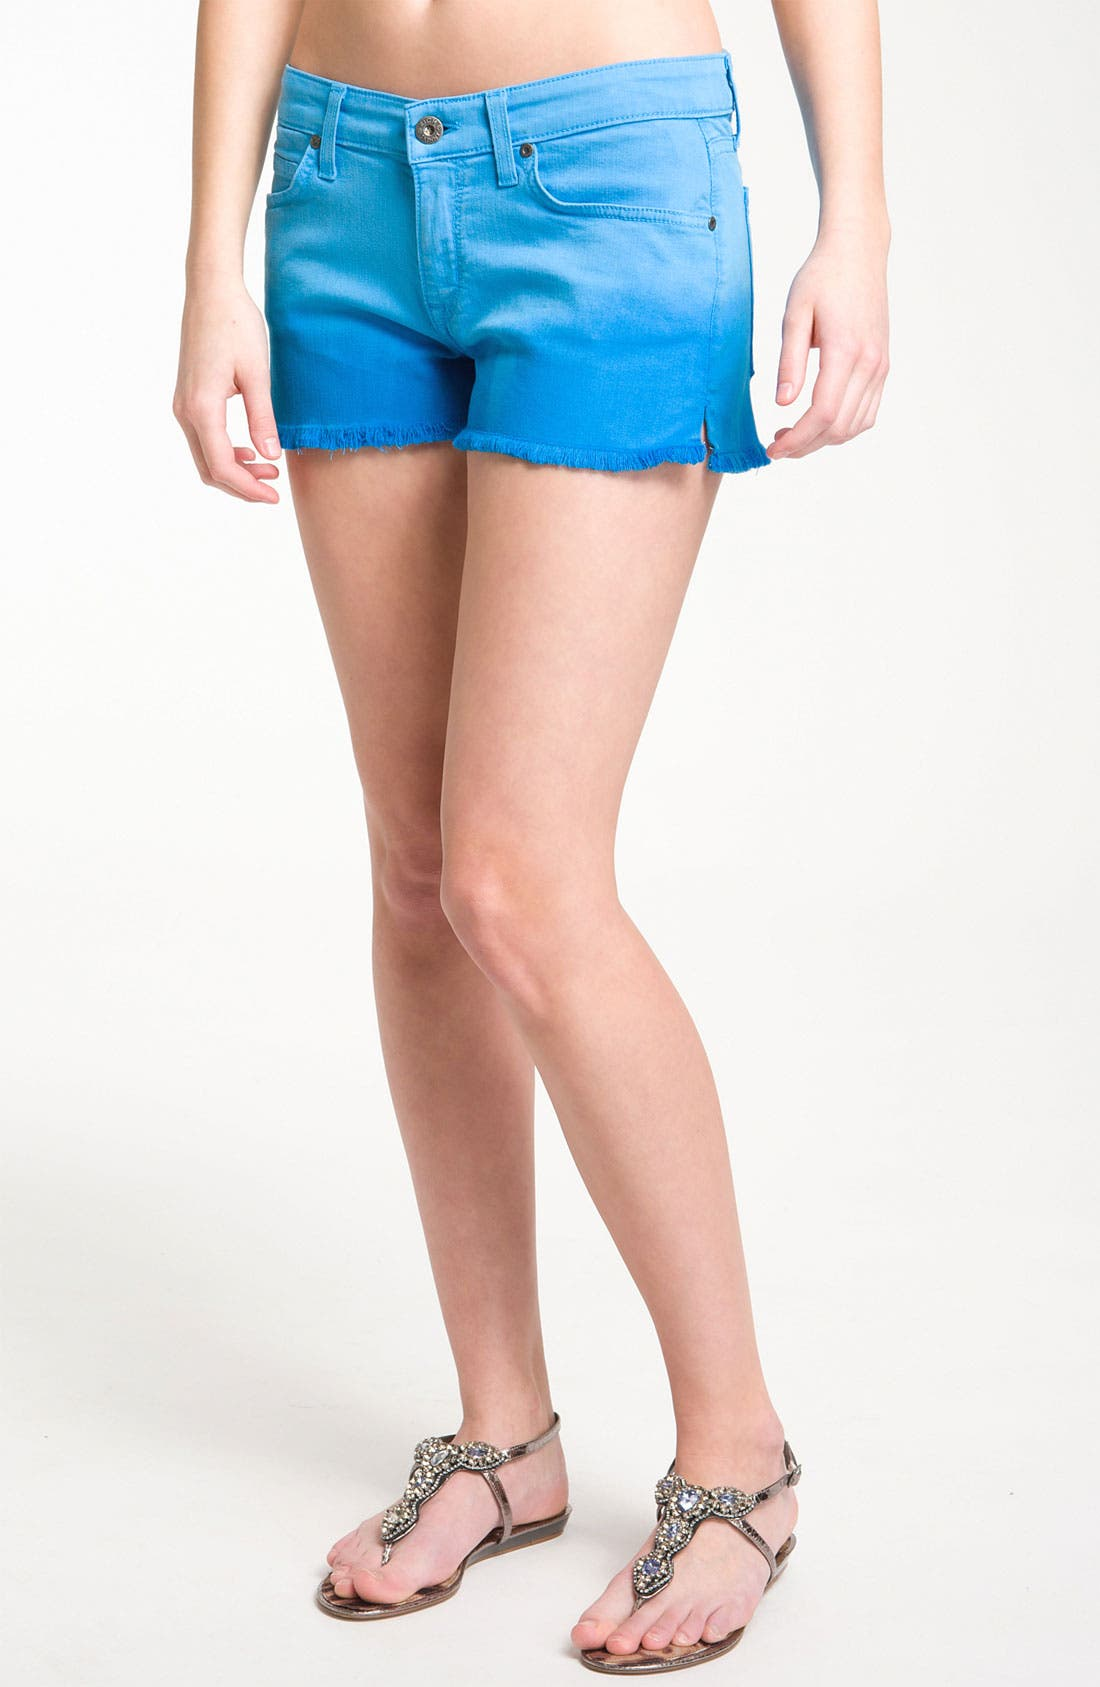 Alternate Image 1 Selected - Rich & Skinny 'Venice' Ombré Denim Cutoff Shorts (Dipped Blue)